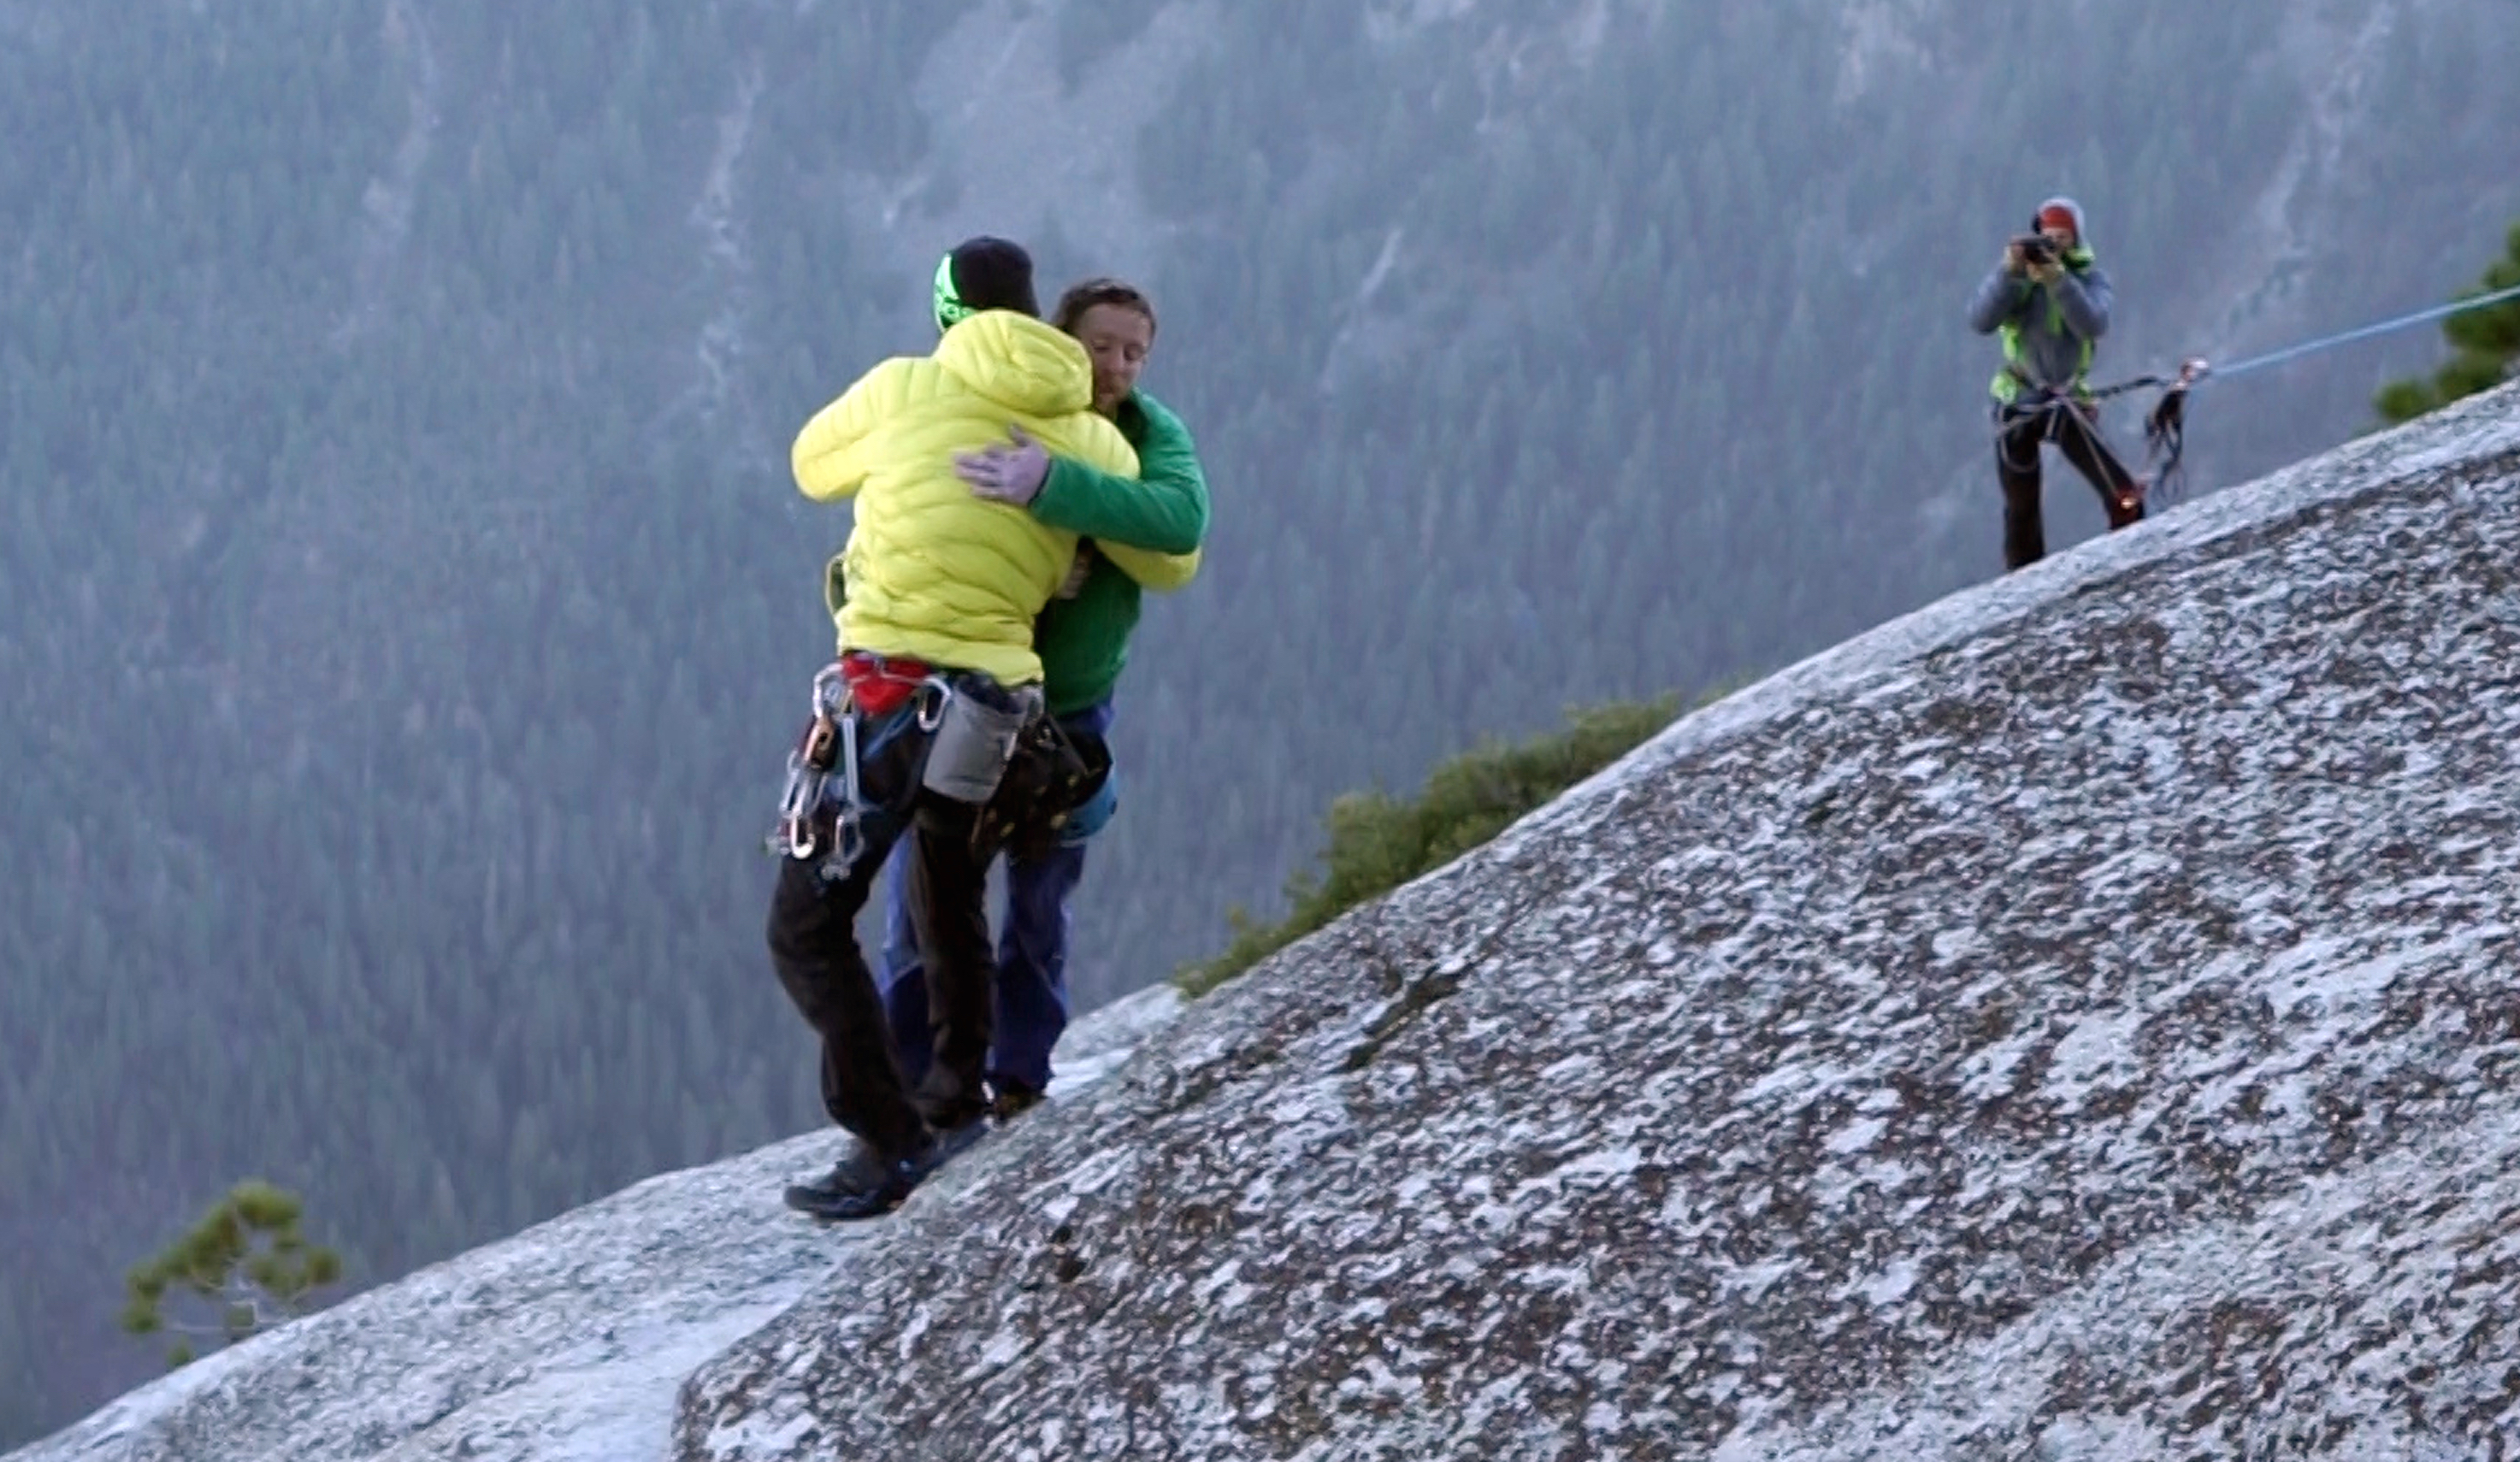 <p>Kevin Jorgeson, left, and Tommy Caldwell embraceeach other after reaching the top of El Capitan, a 3,000-foot sheer granite face in Yosemite National Park, Calif.</p>